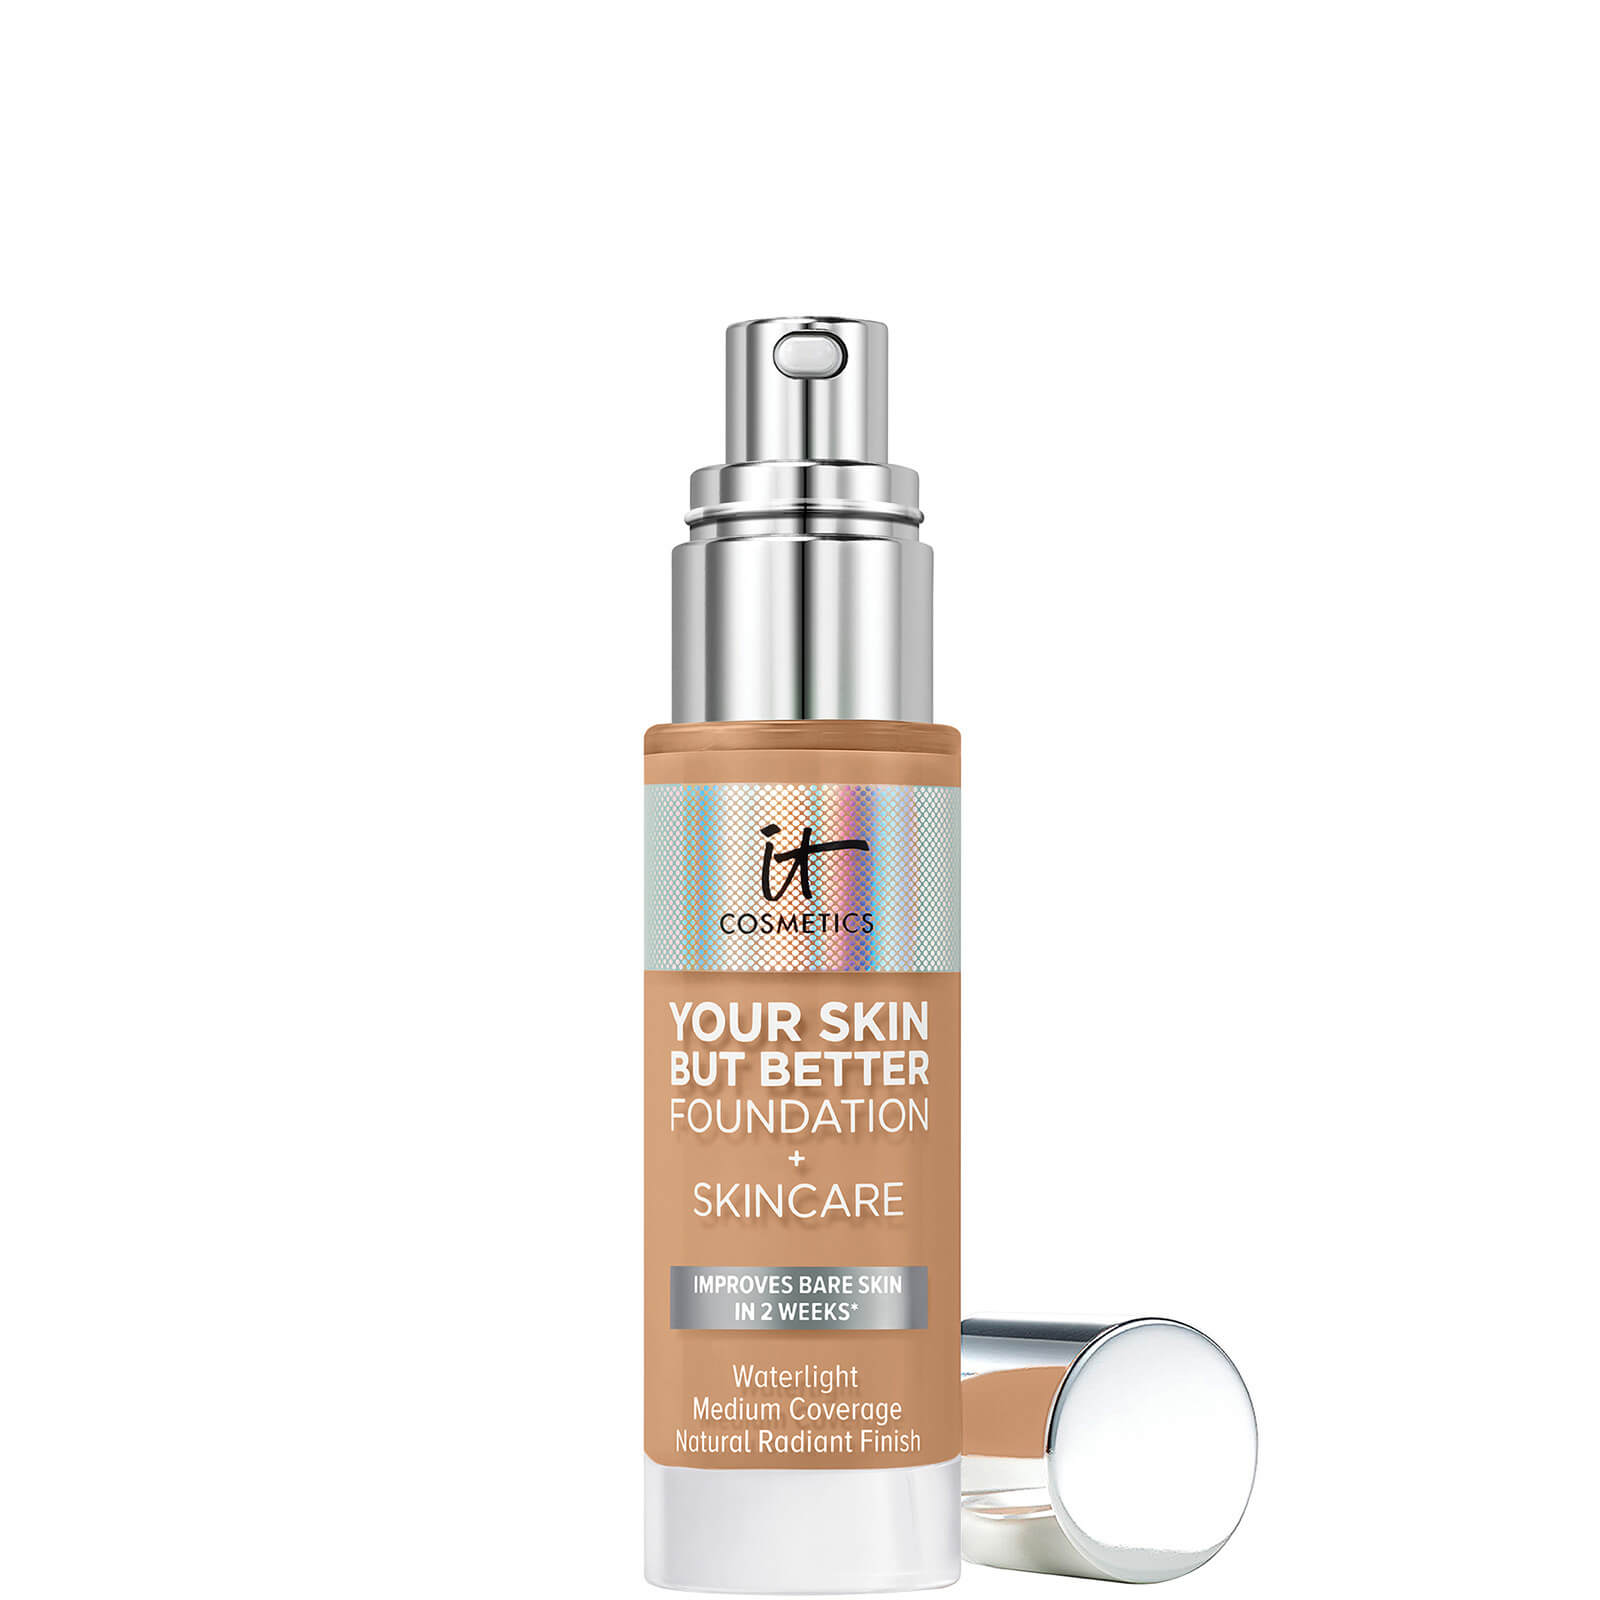 IT Cosmetics Your Skin But Better Foundation and Skincare 30ml (Various Shades) - 39 Tan Neutral